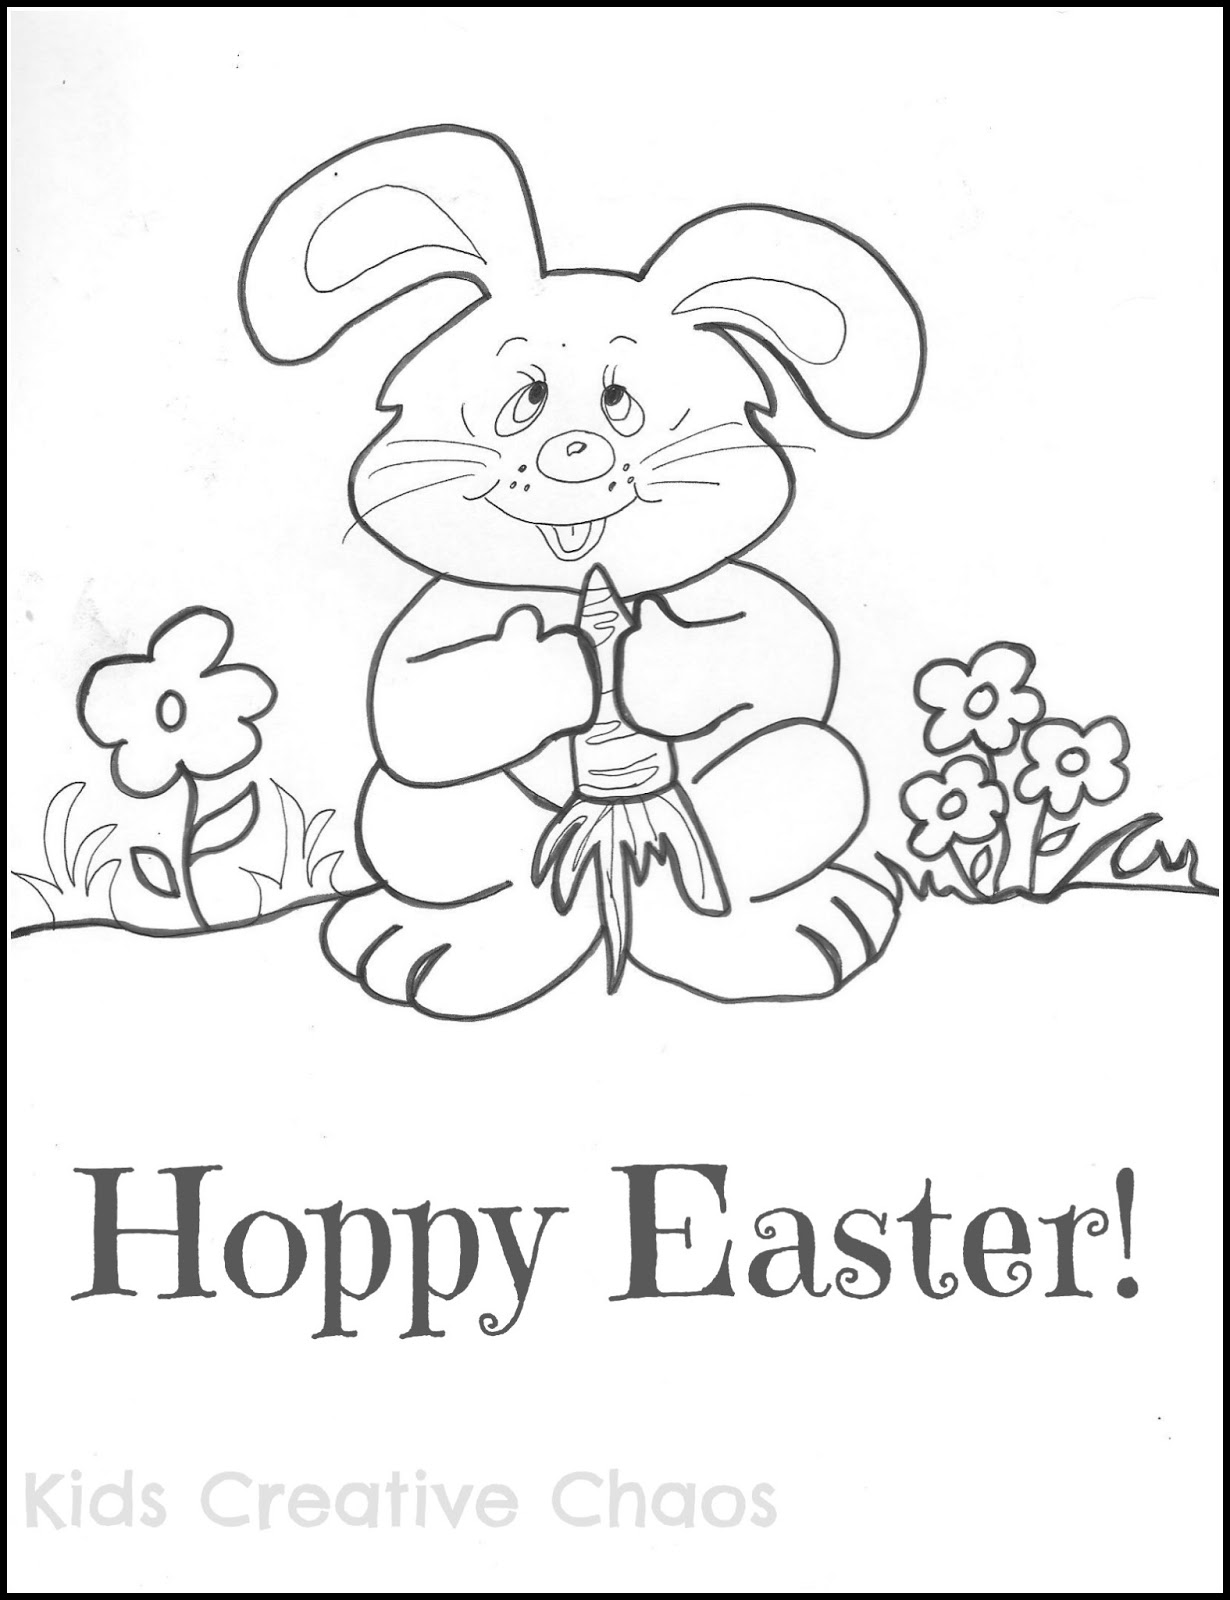 Easter Bunny Coloring Page Printable